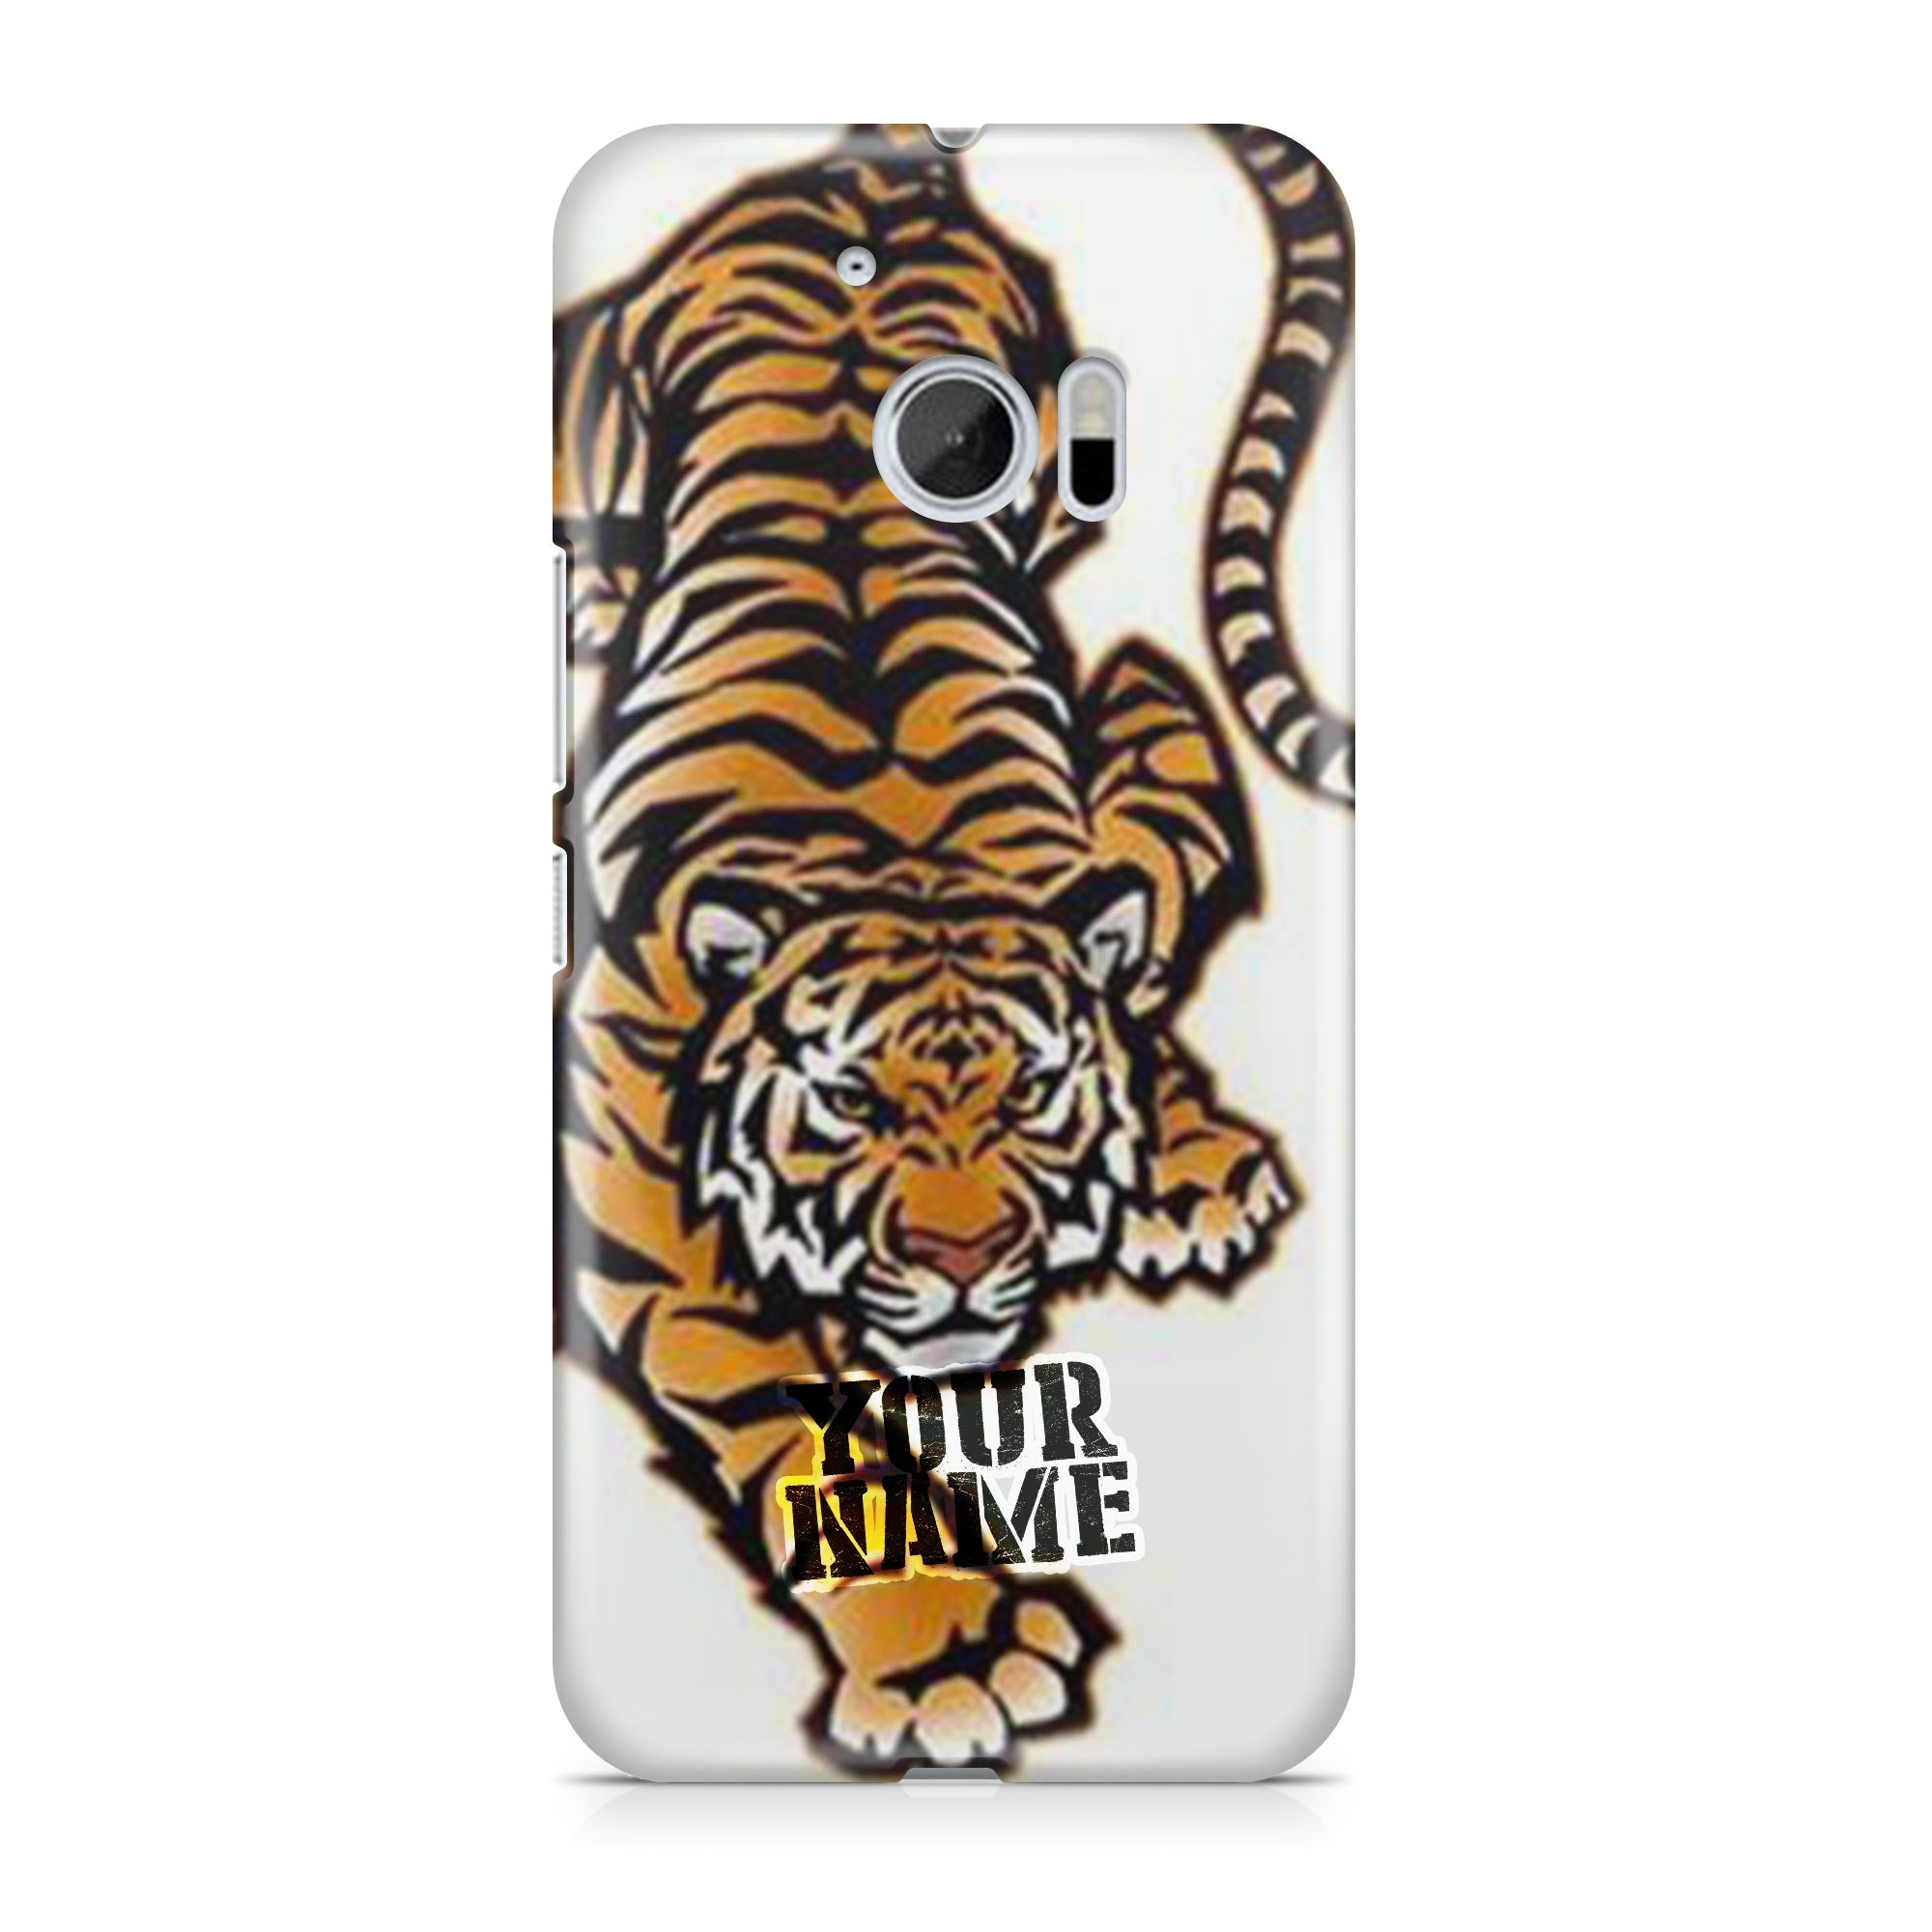 Texture Patterns Tiger Indian Phone Cases cover